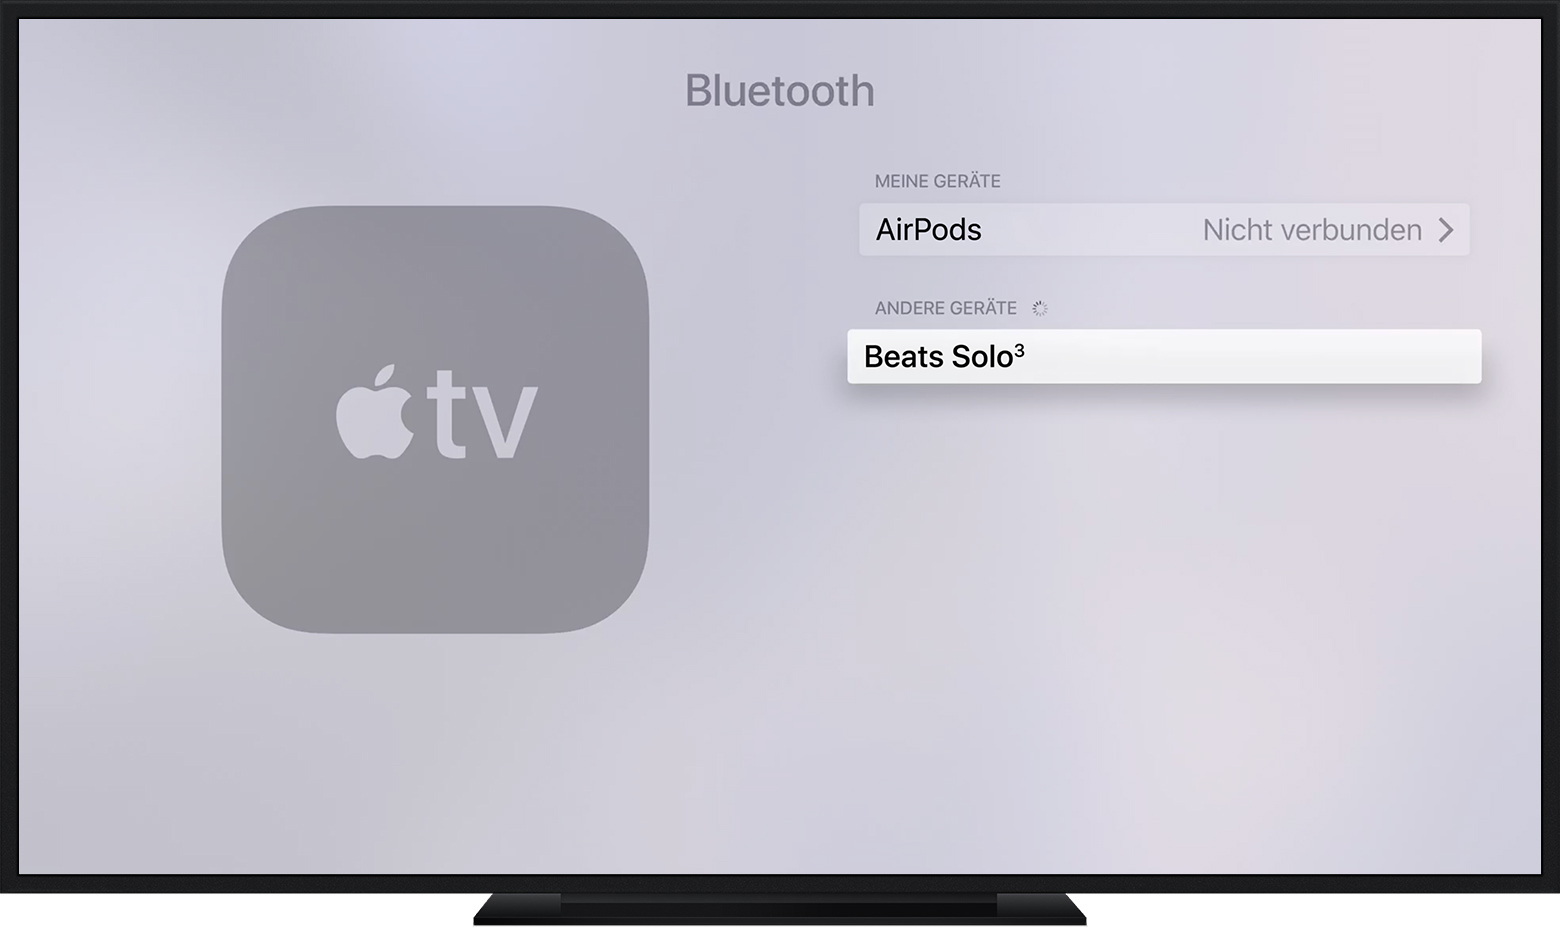 bluetooth zubeh r f r apple tv 4k oder apple tv 4. Black Bedroom Furniture Sets. Home Design Ideas